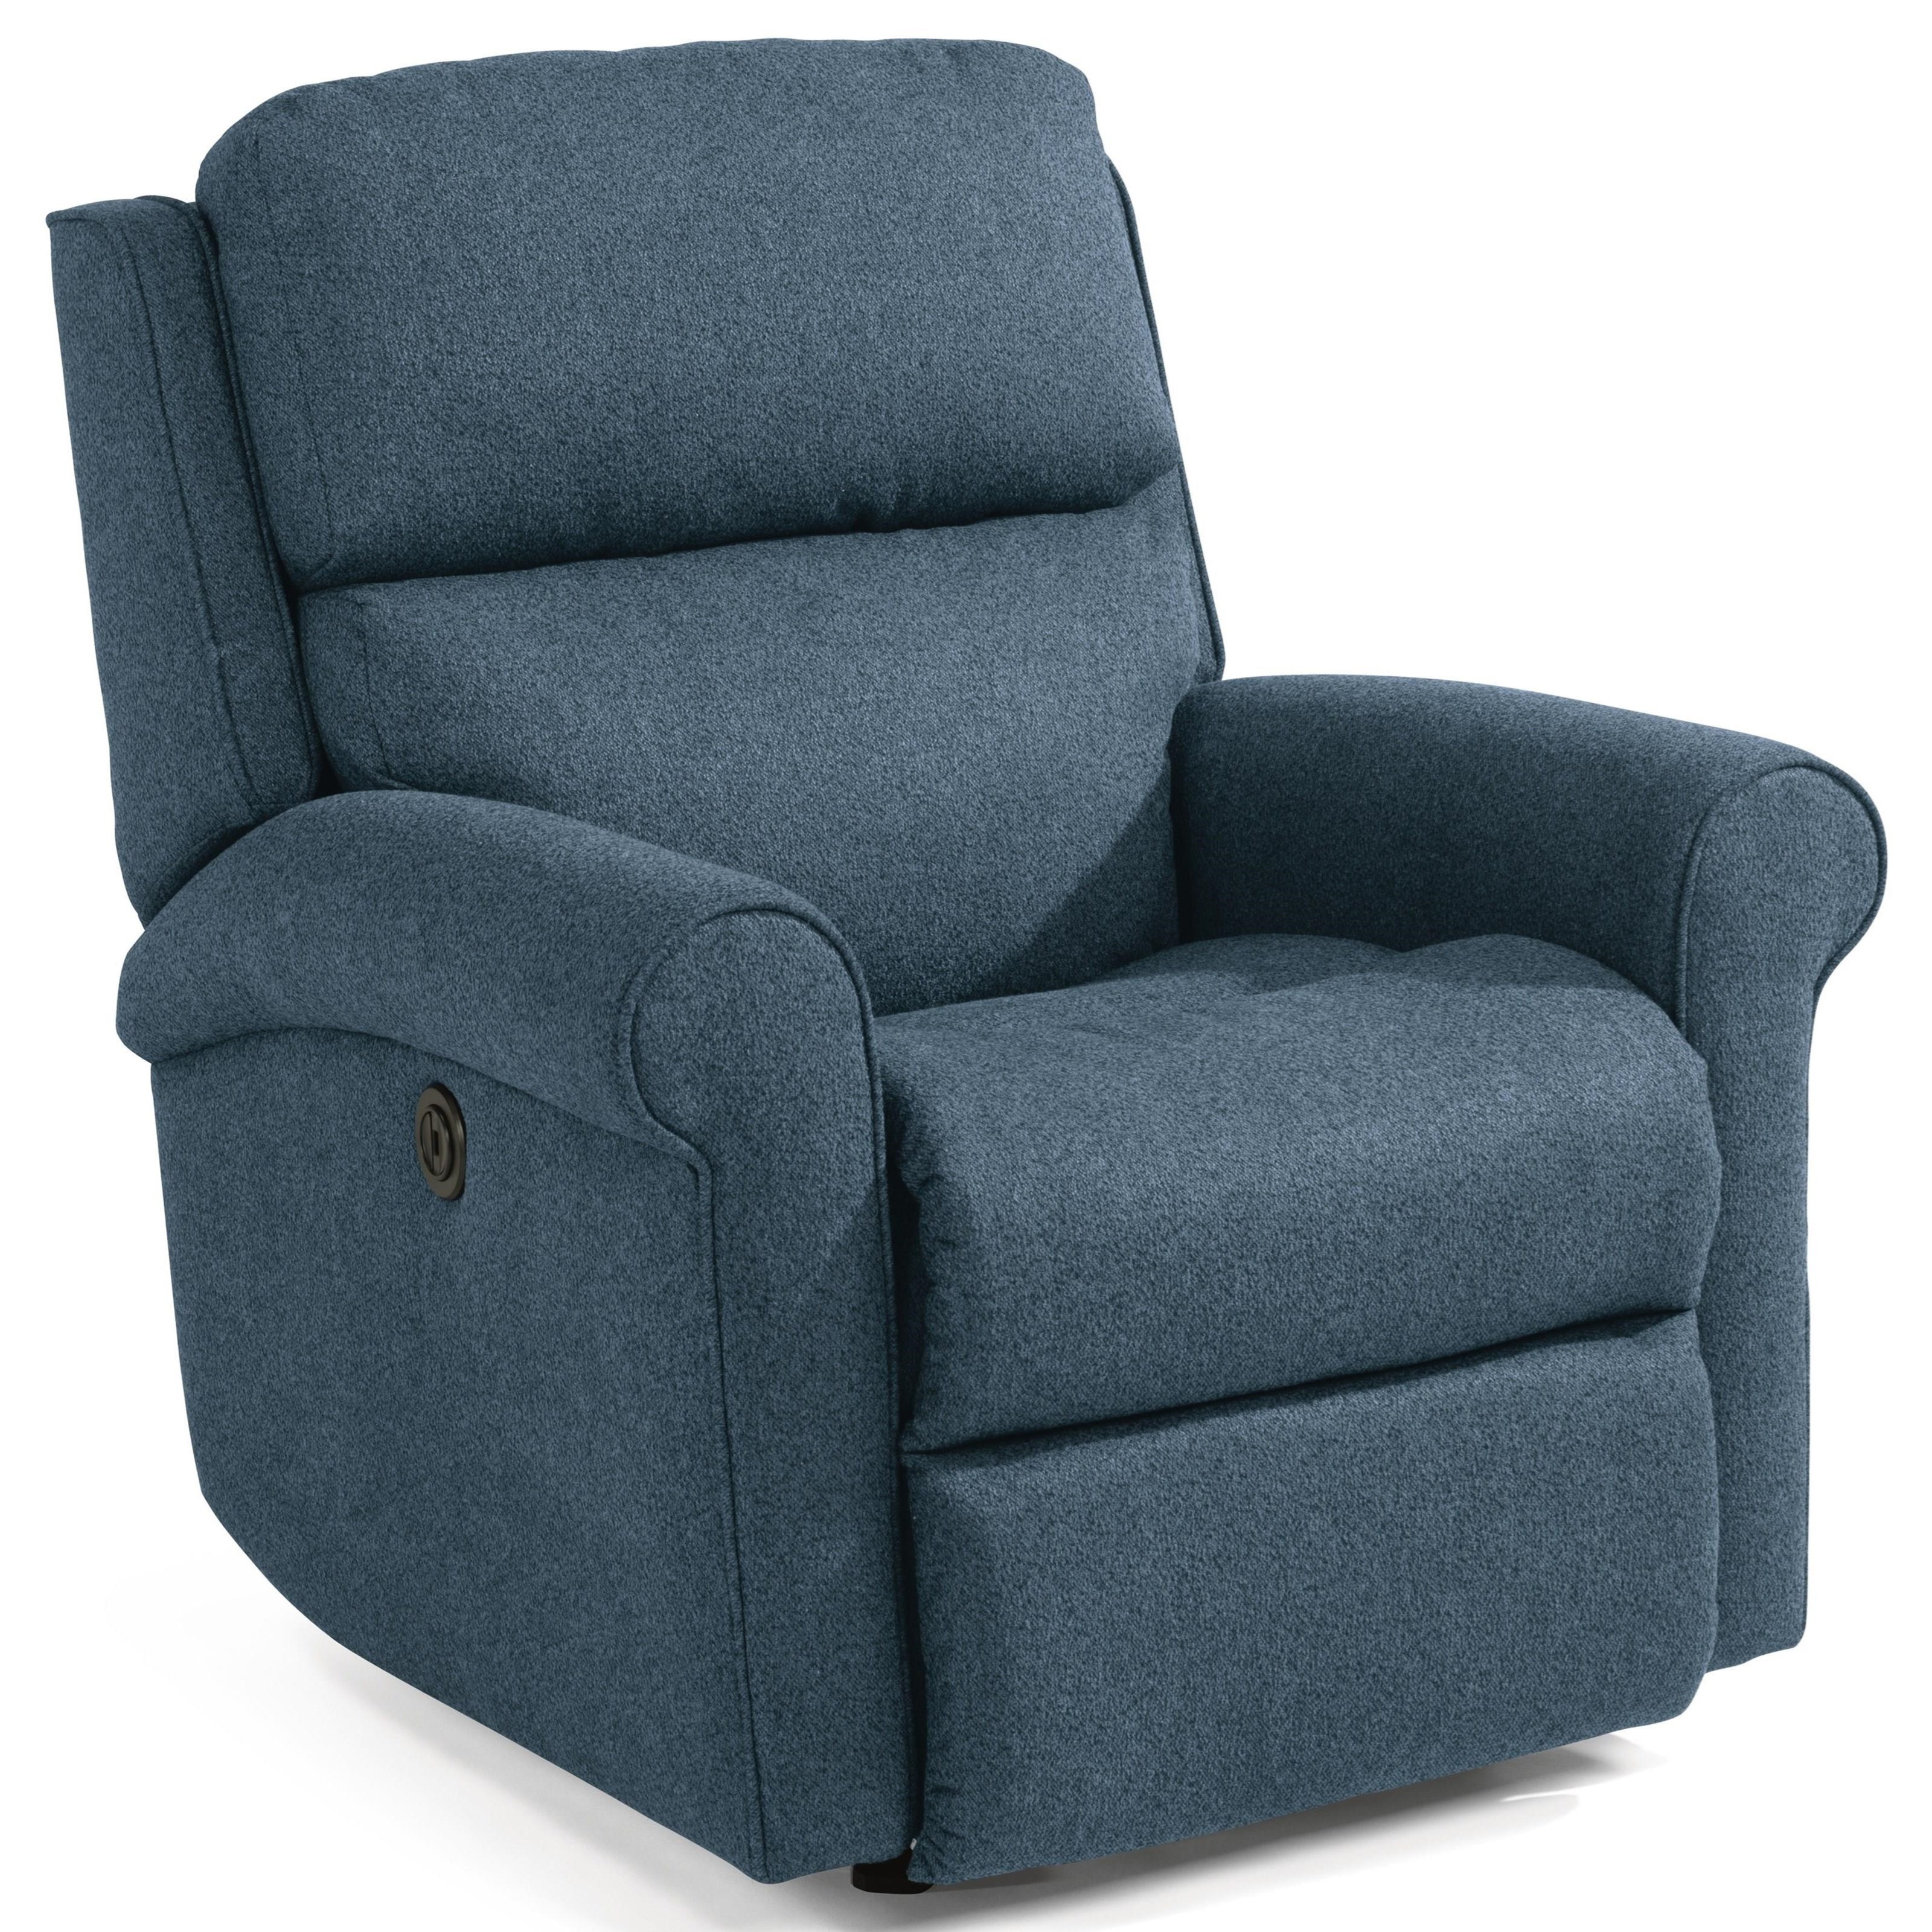 Belle Power Recliner  by Flexsteel at Jordan's Home Furnishings